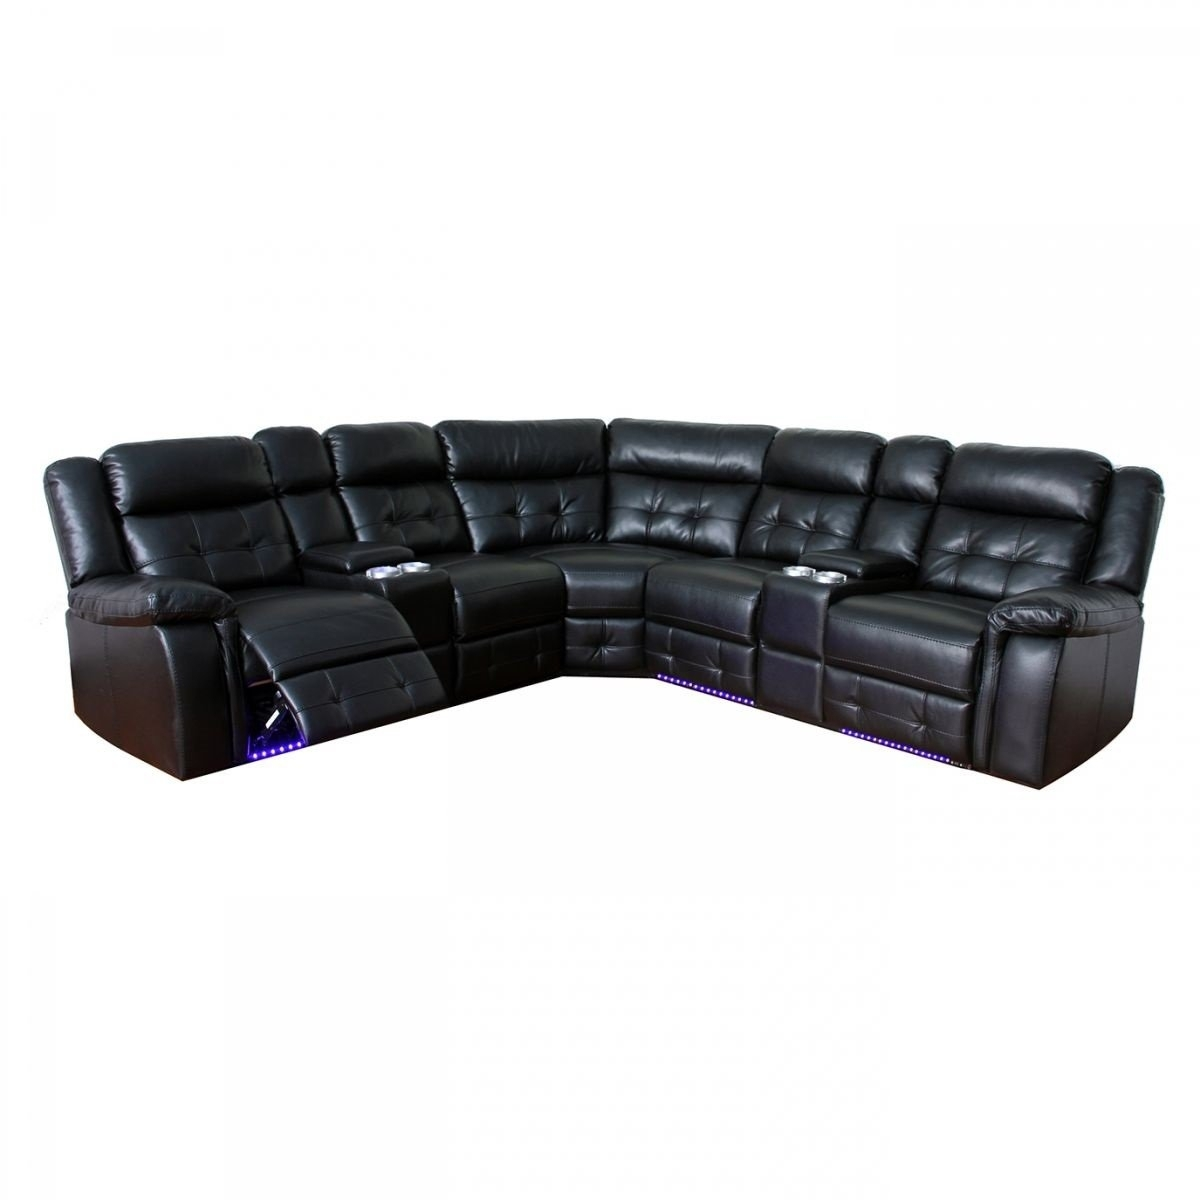 Grey Reclining Sectional - Tidex within Denali Charcoal Grey 6 Piece Reclining Sectionals With 2 Power Headrests (Image 16 of 30)